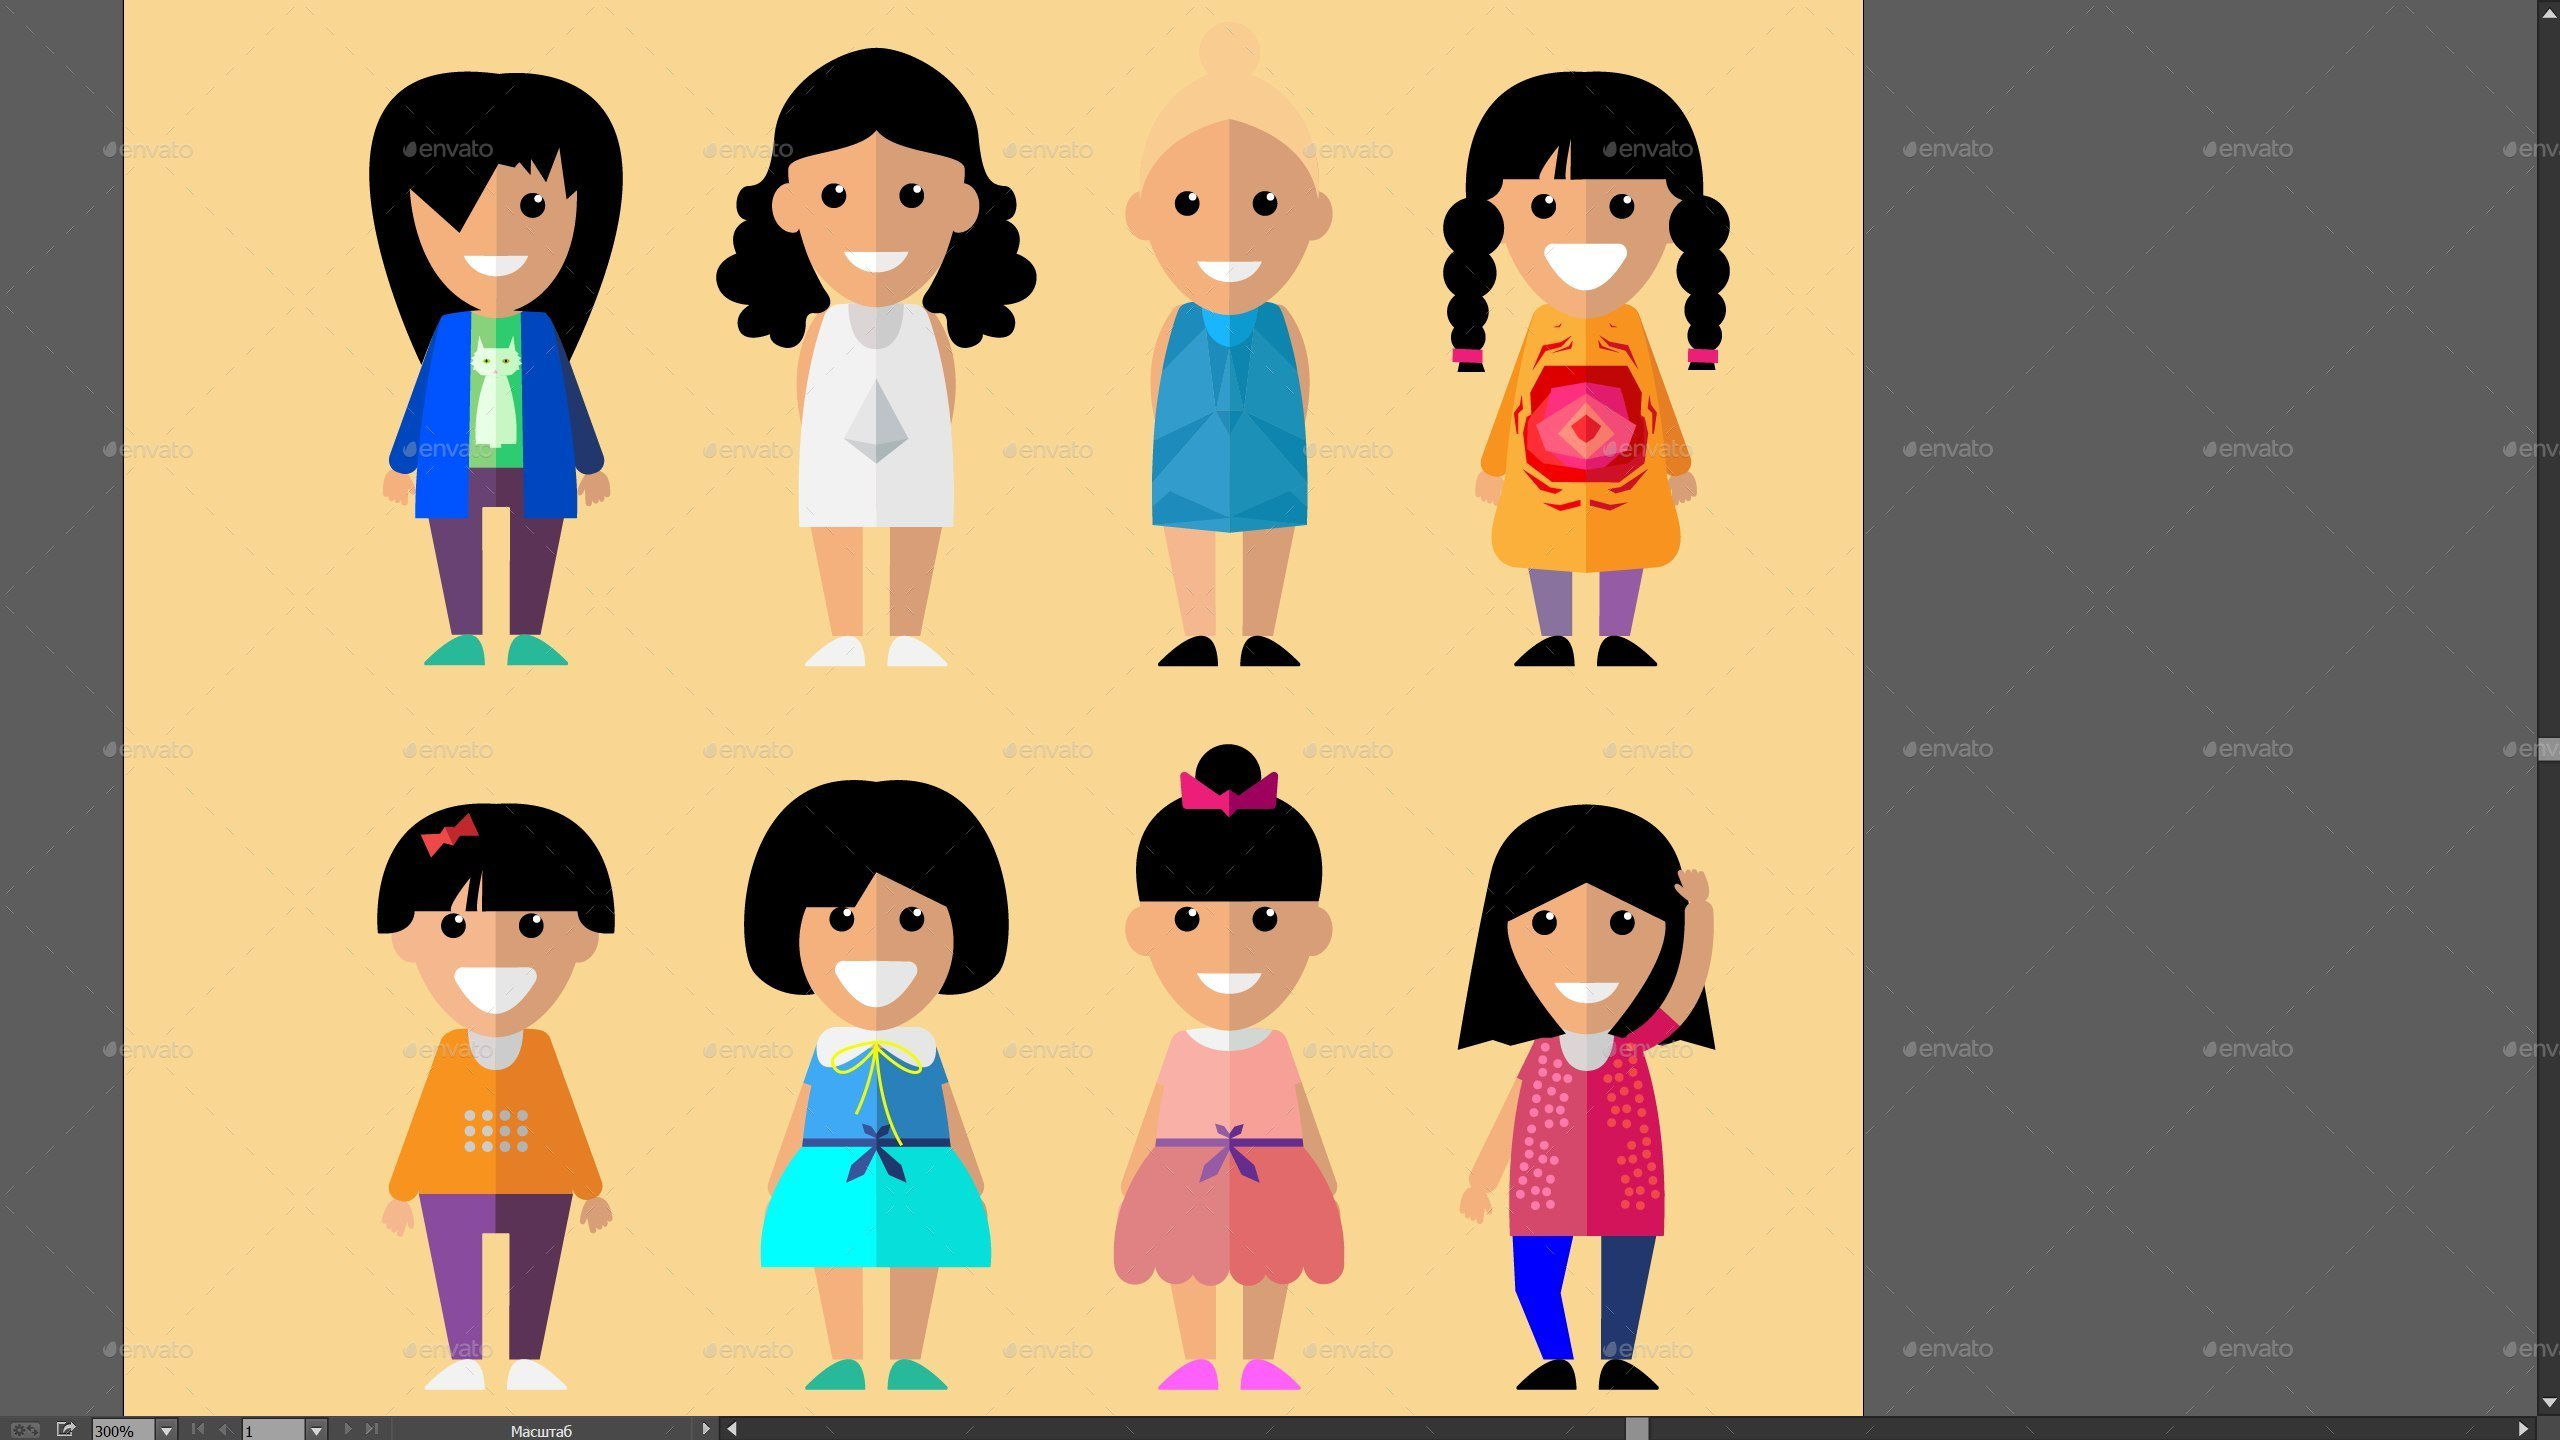 Simple Character Design Illustrator : 25 flat characters design vector pack by vitaliyvill graphicriver